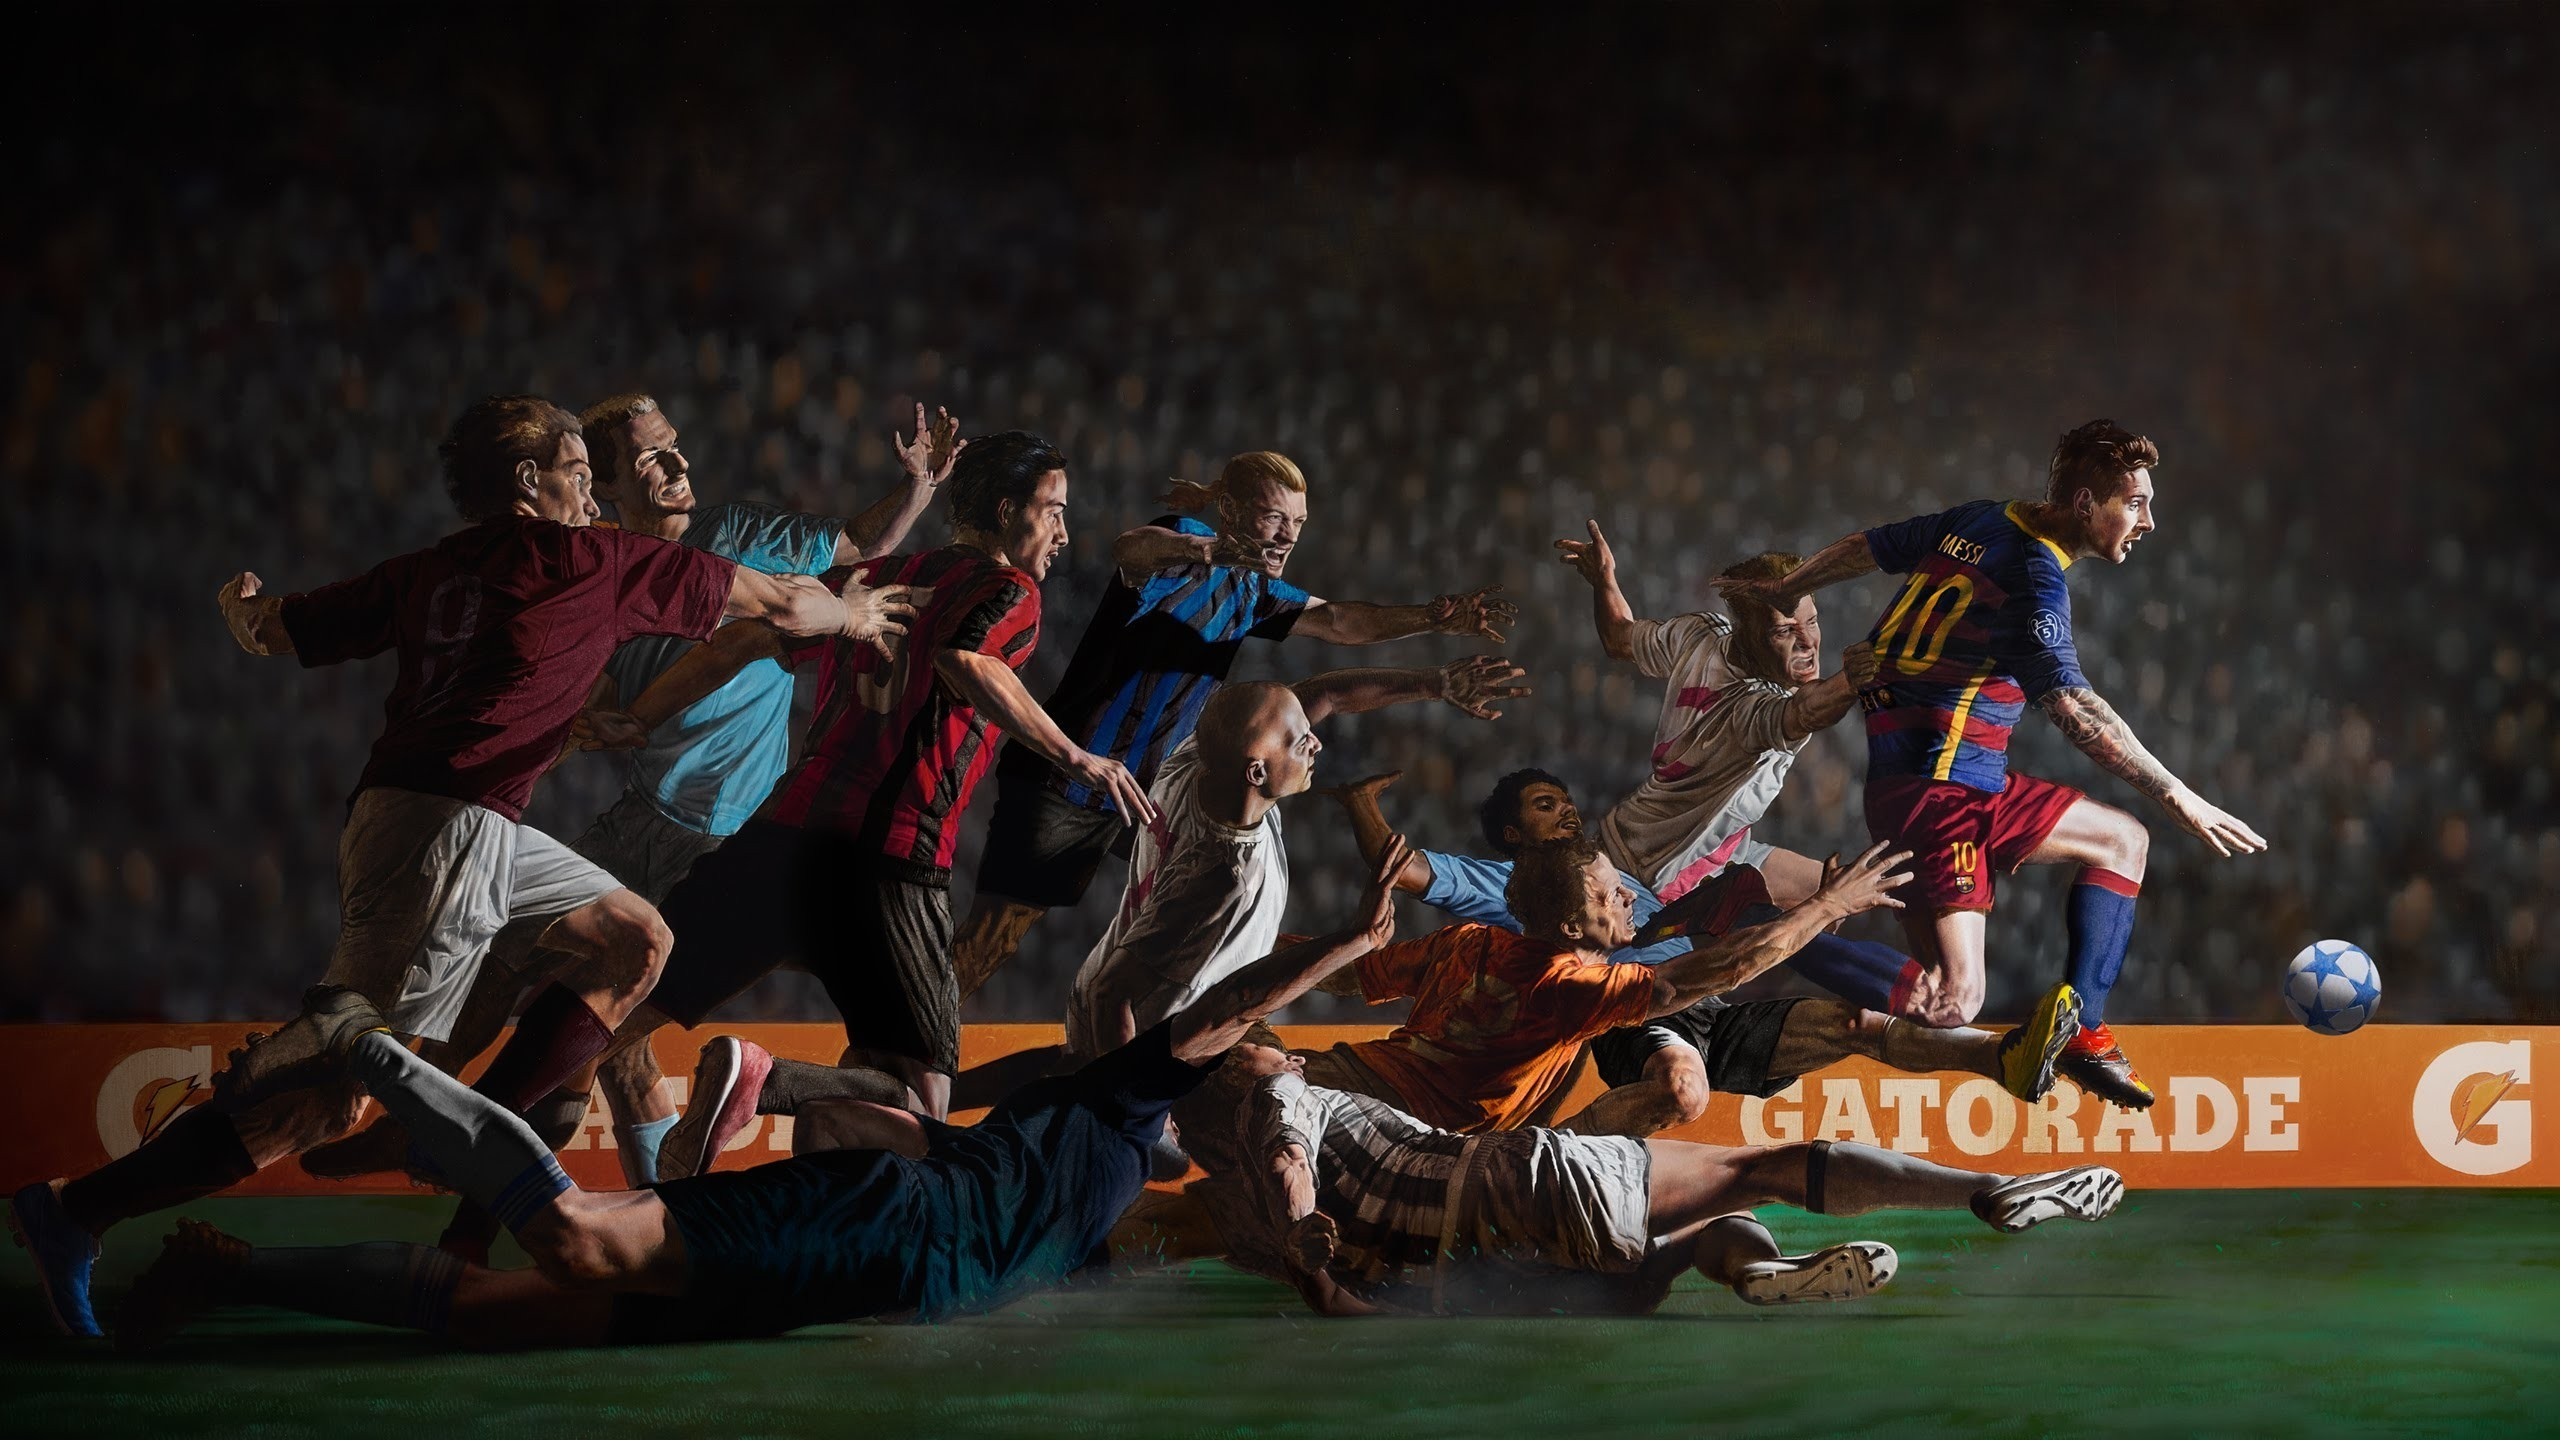 fc barcelona mac wallpaper top soccer gallery blogger